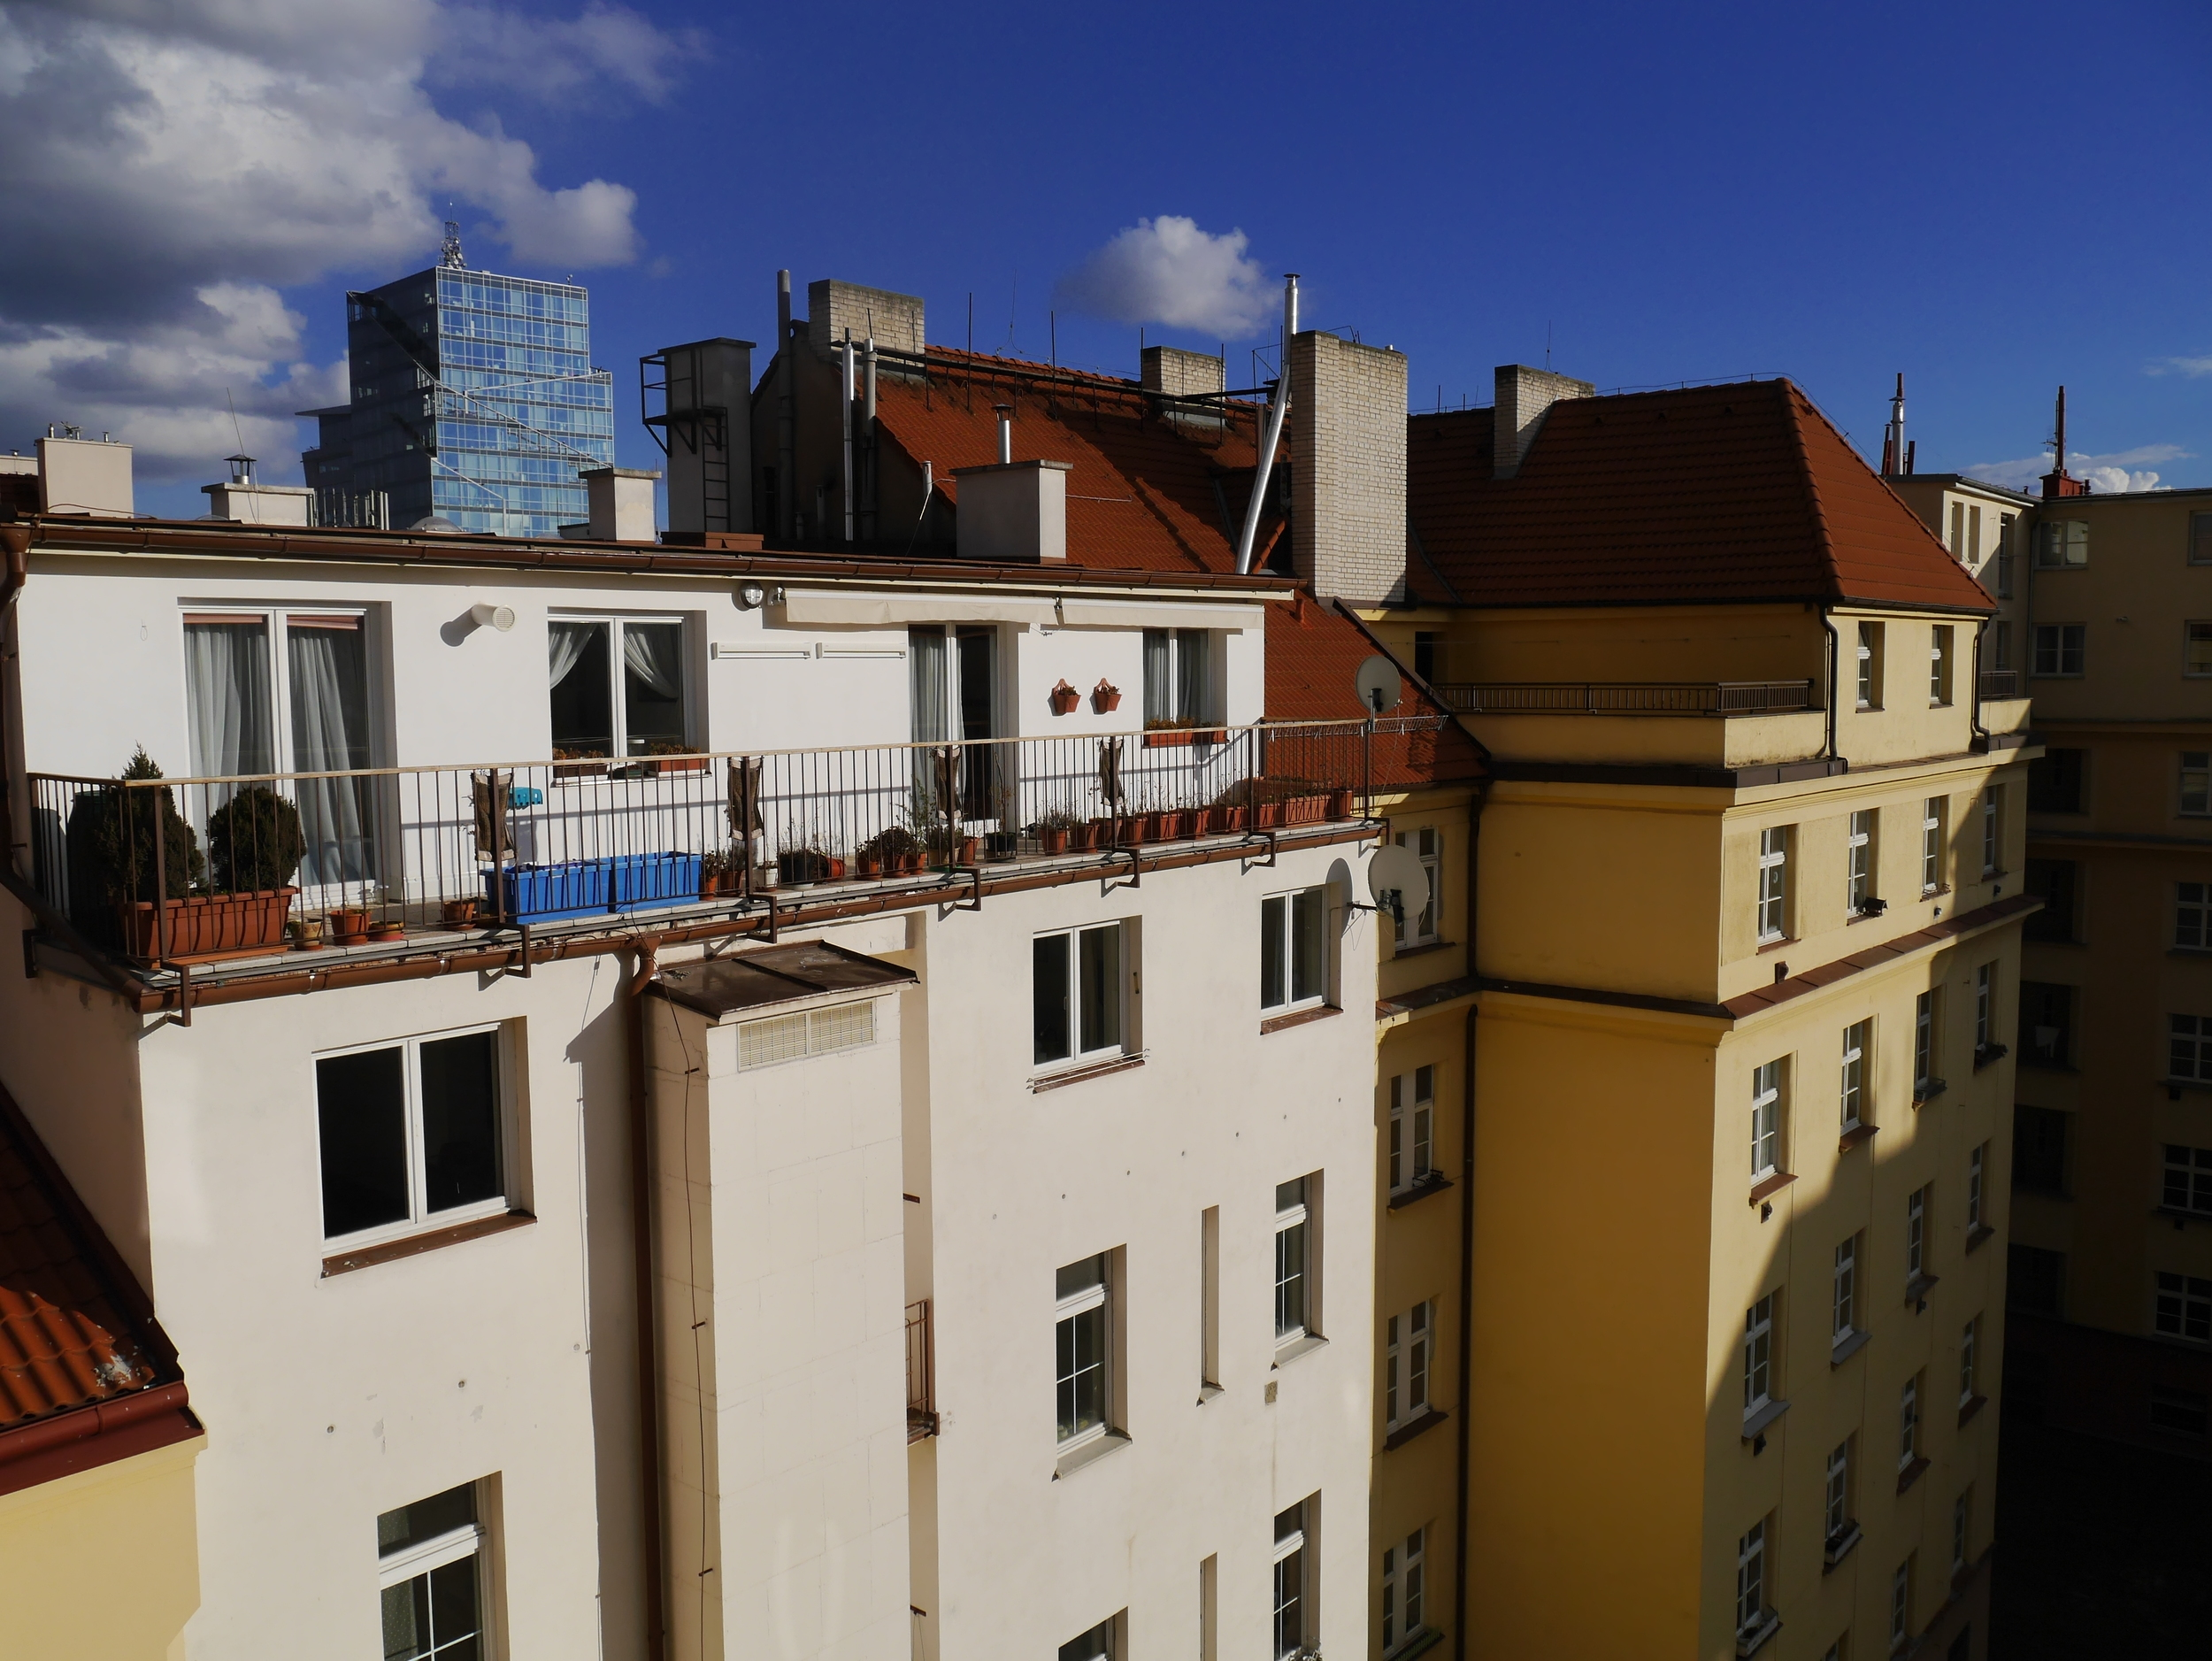 View from our apartment balcony.